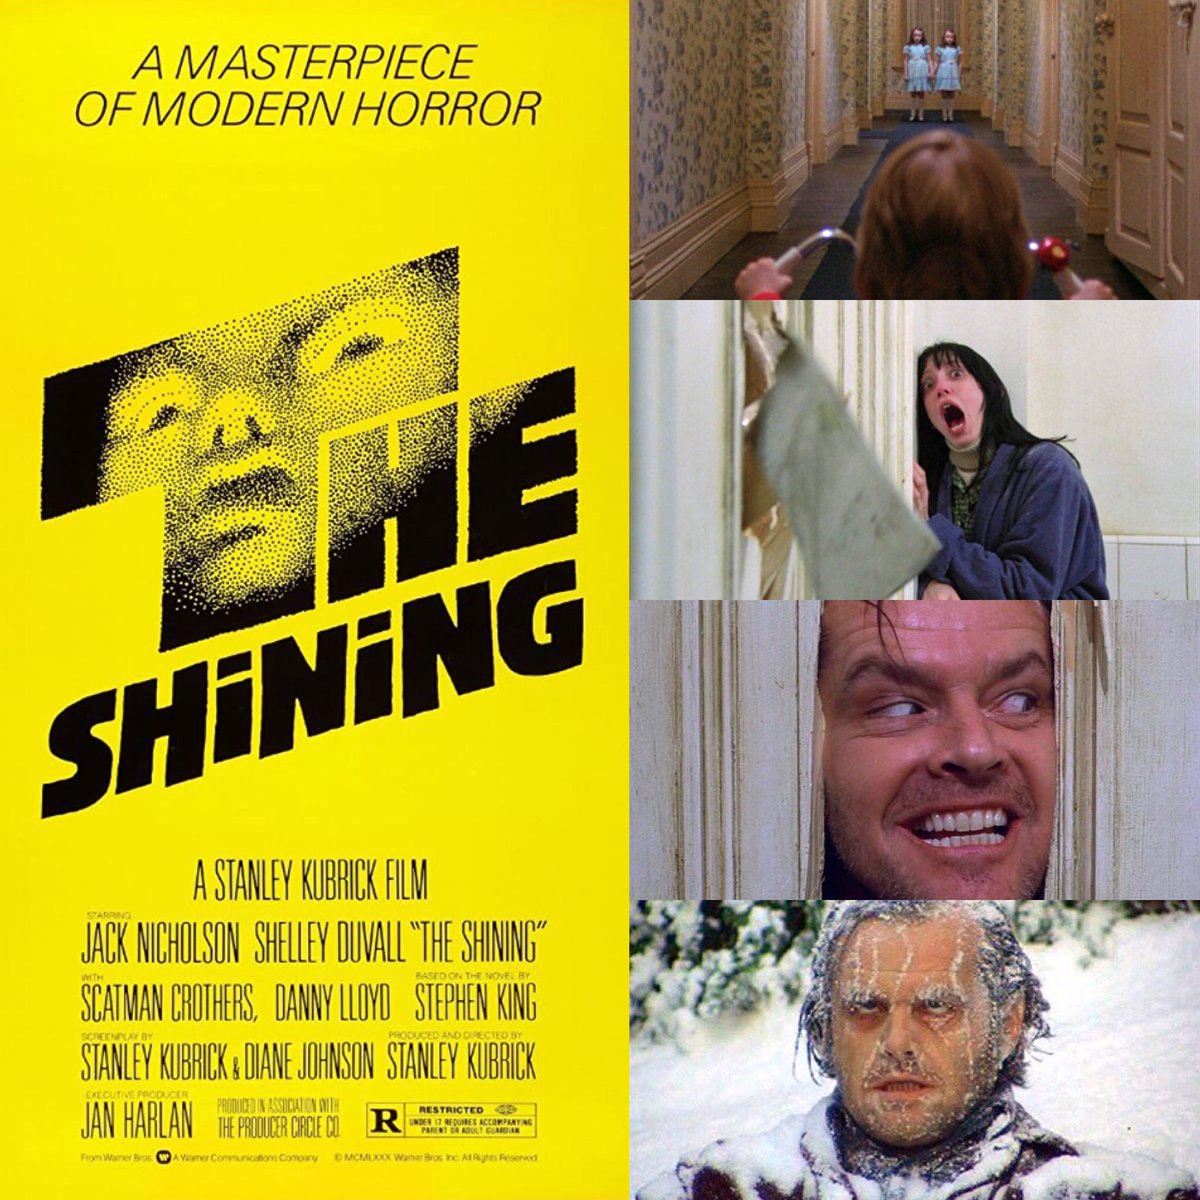 """Happy 40th Anniversary to #TheShining! On this day in 1980, the film had a limited release to audiences. Directed by #StanleyKubrick. Written by Stanley Kubrick and Diane Johnson, based on the novel by #StephenKing. """"All work and no play make Jack a dull boy...""""pic.twitter.com/Oq9tzv0qDf"""